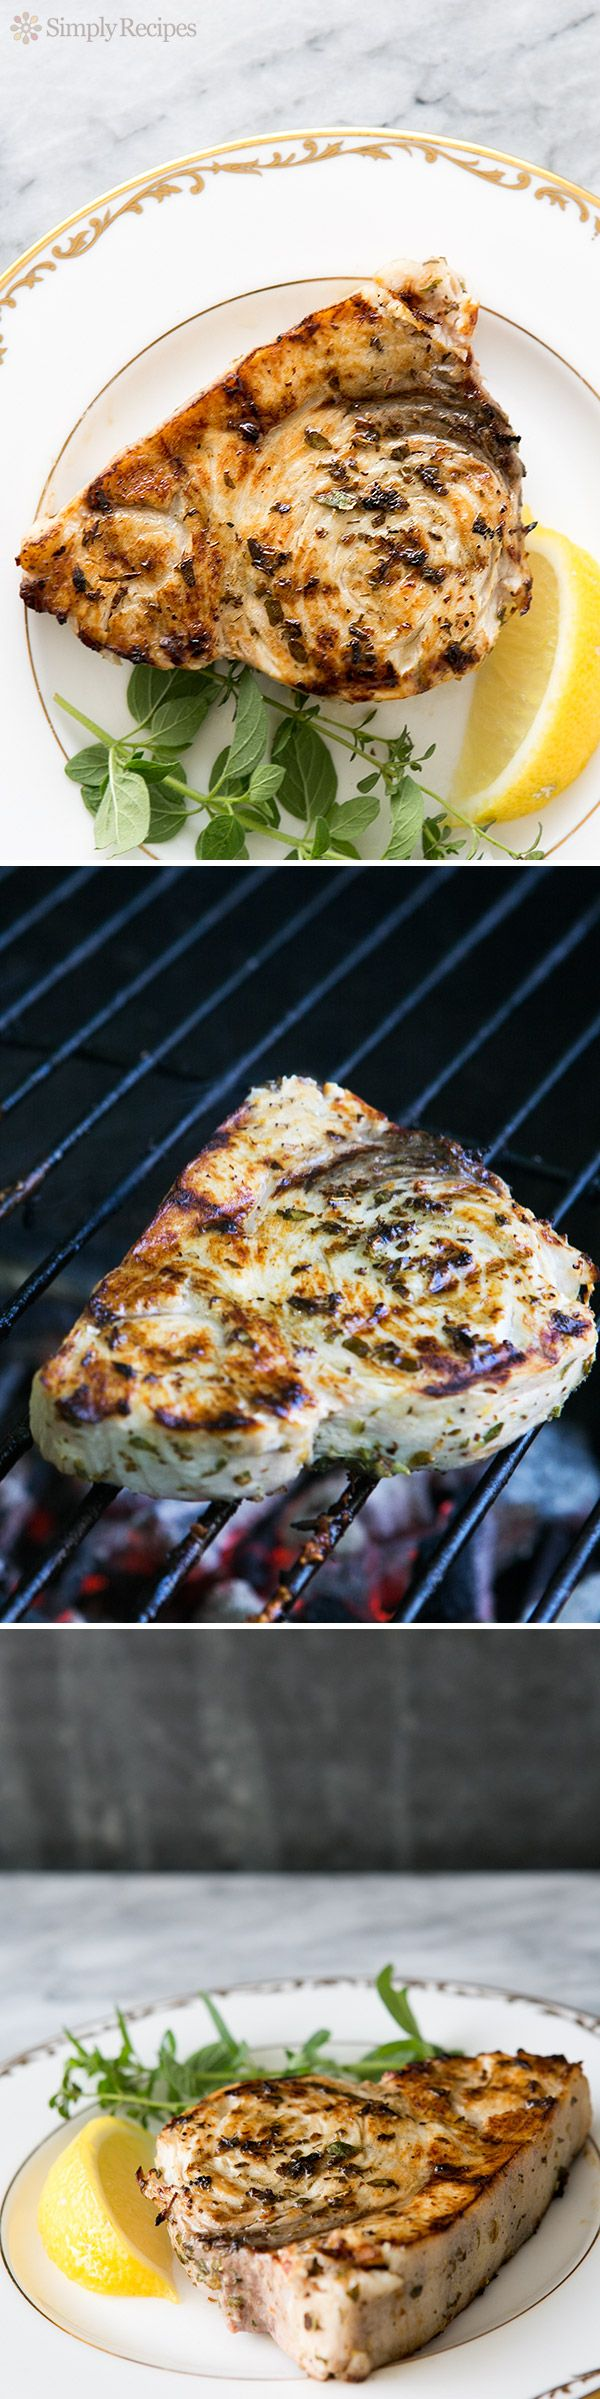 Grilled Swordfish Steaks with Lemon Oregano Marinade ~ Grilled swordfish steaks that have marinated in olive oil, lemon juice, oregano, thyme and garlic ~ SimplyRecipes.com